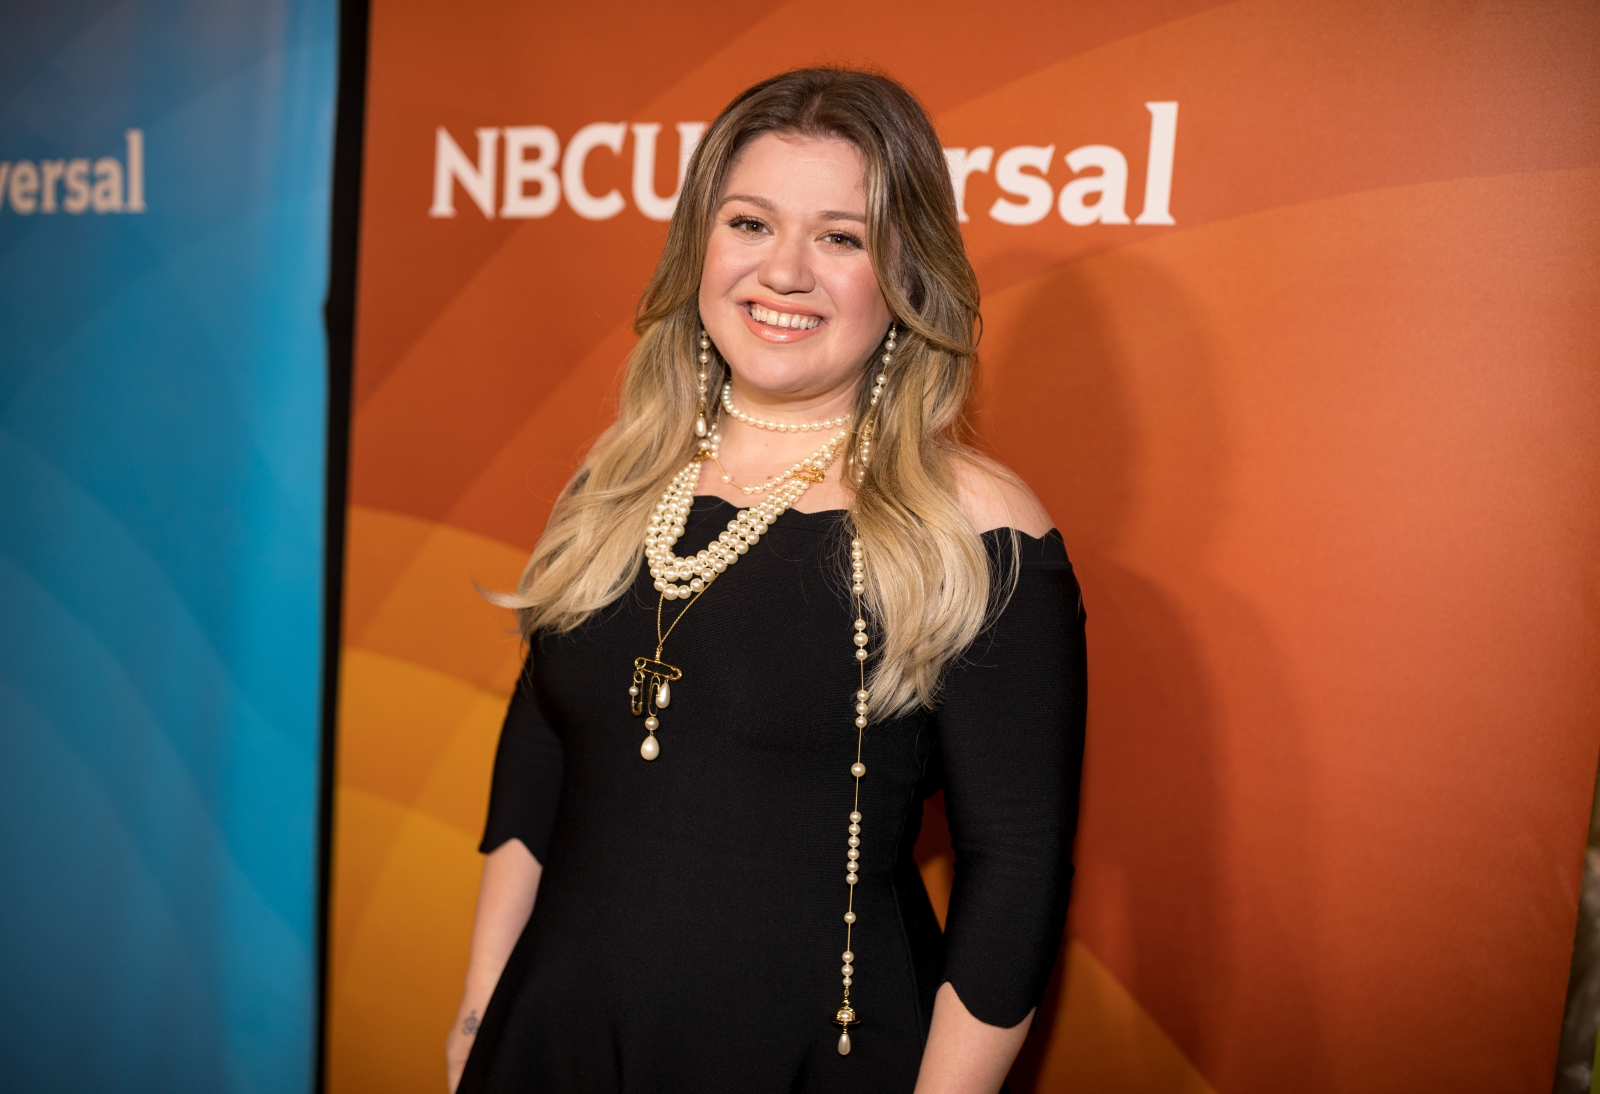 Kelly Clarkson Just Admitted She Spanks Her Kids and People Aren't Happy